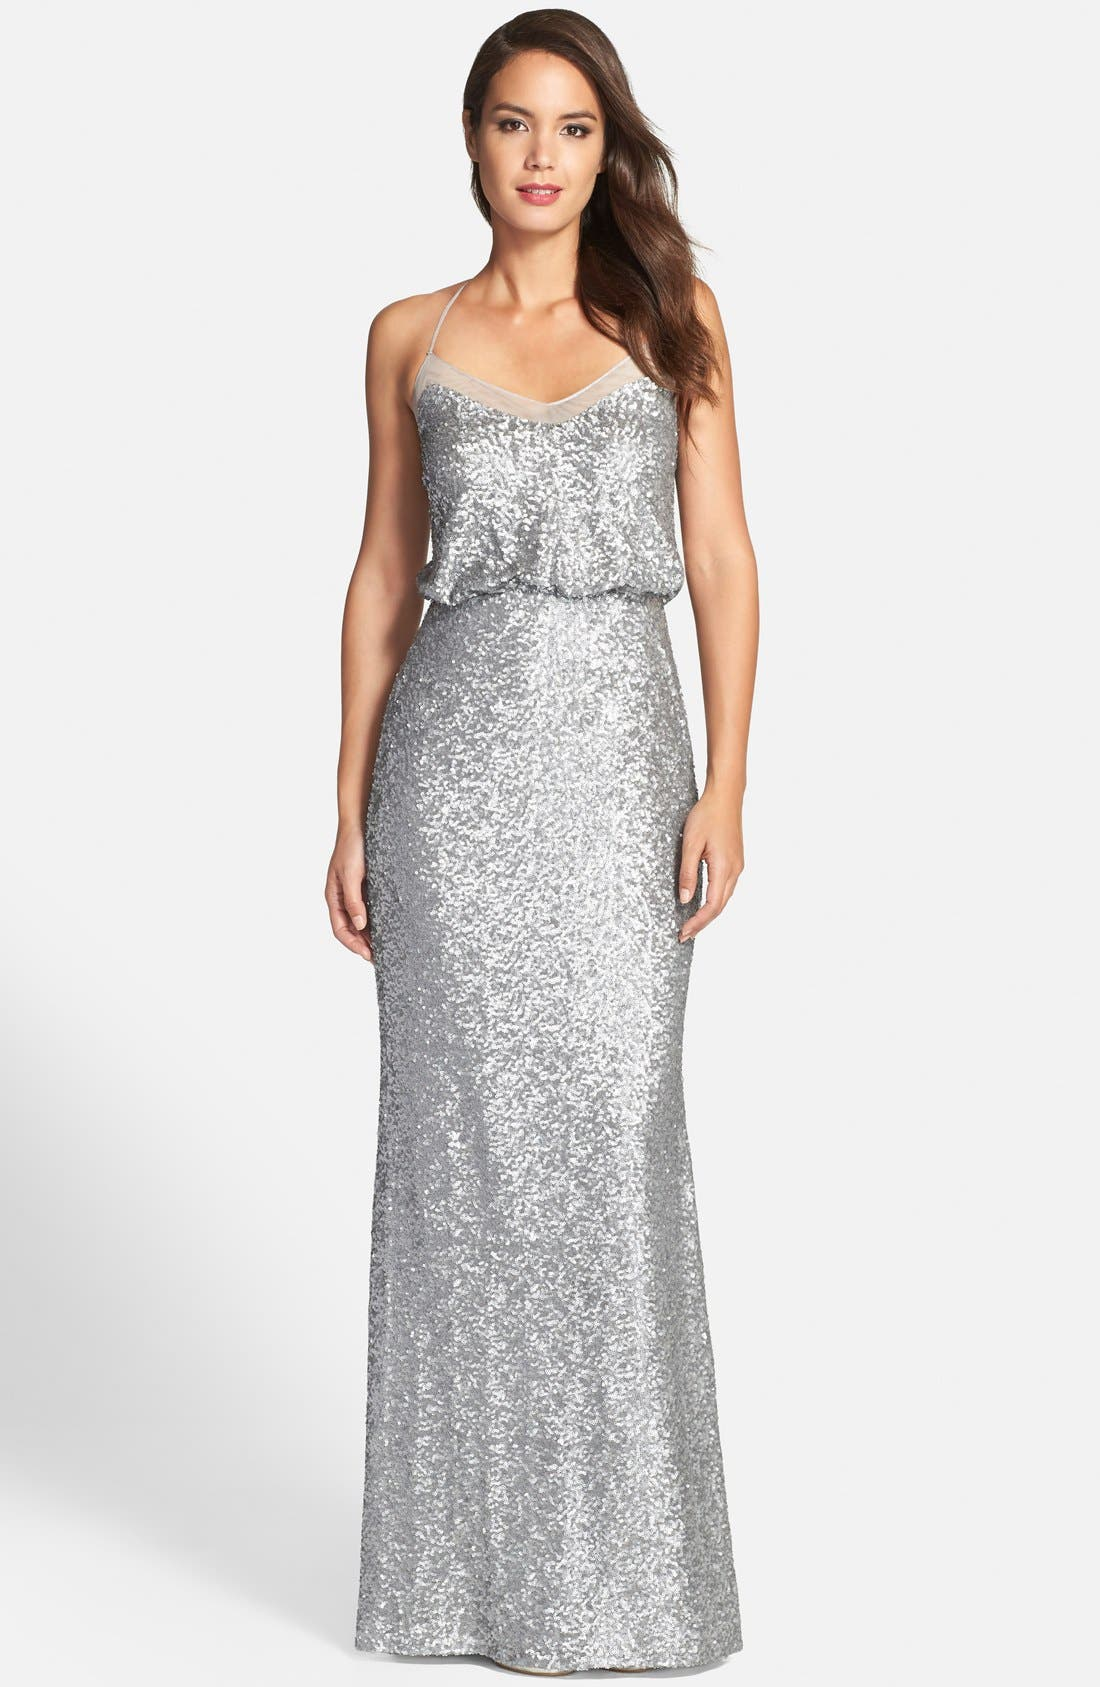 Badgley Mischka Sequin Mermaid Gown,                             Main thumbnail 1, color,                             042